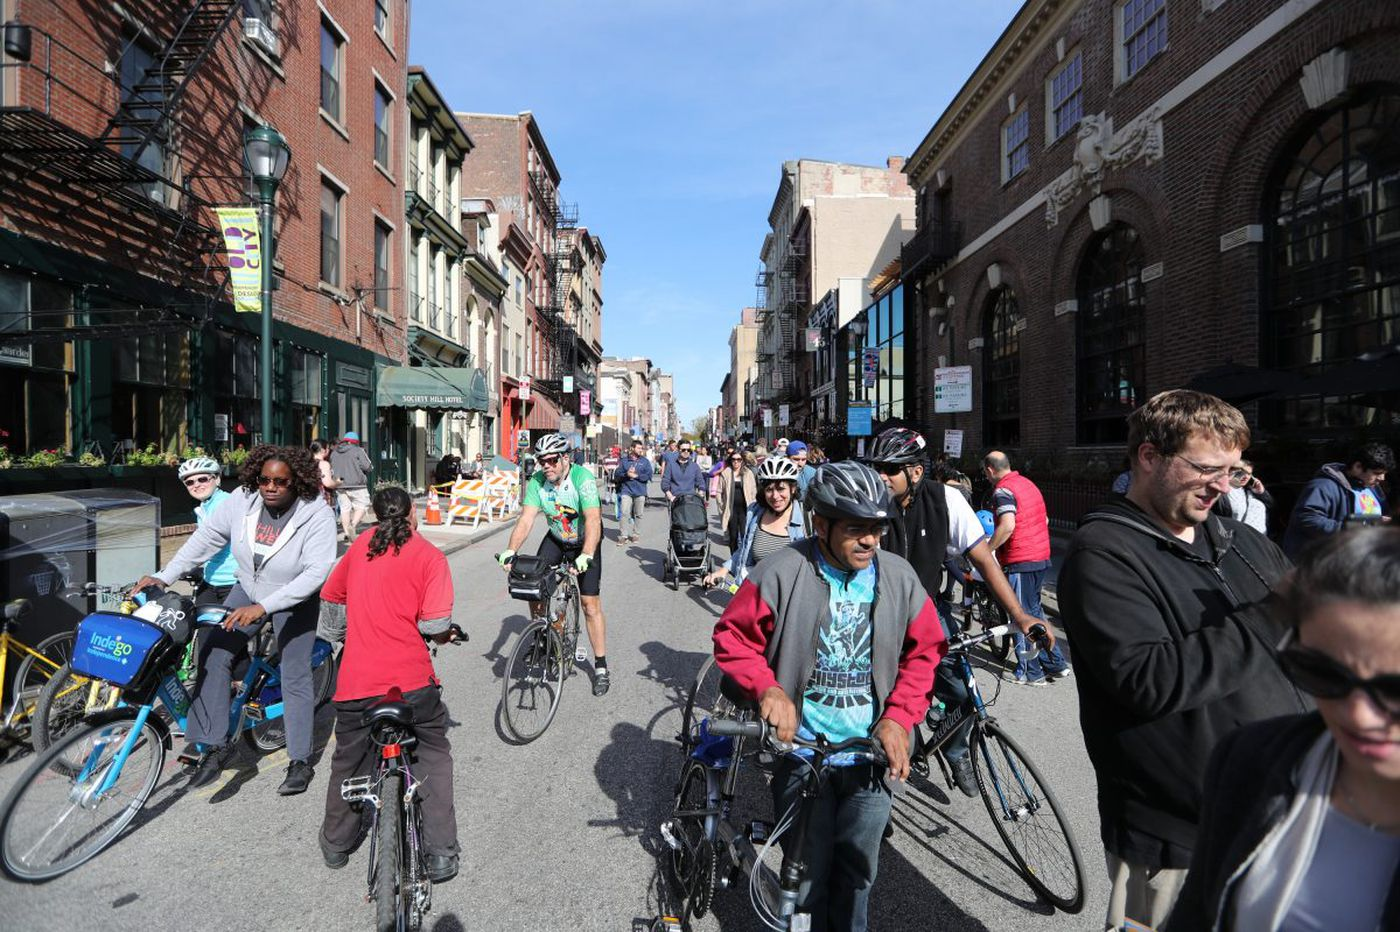 Philly Free Streets will be on North Broad in 2018